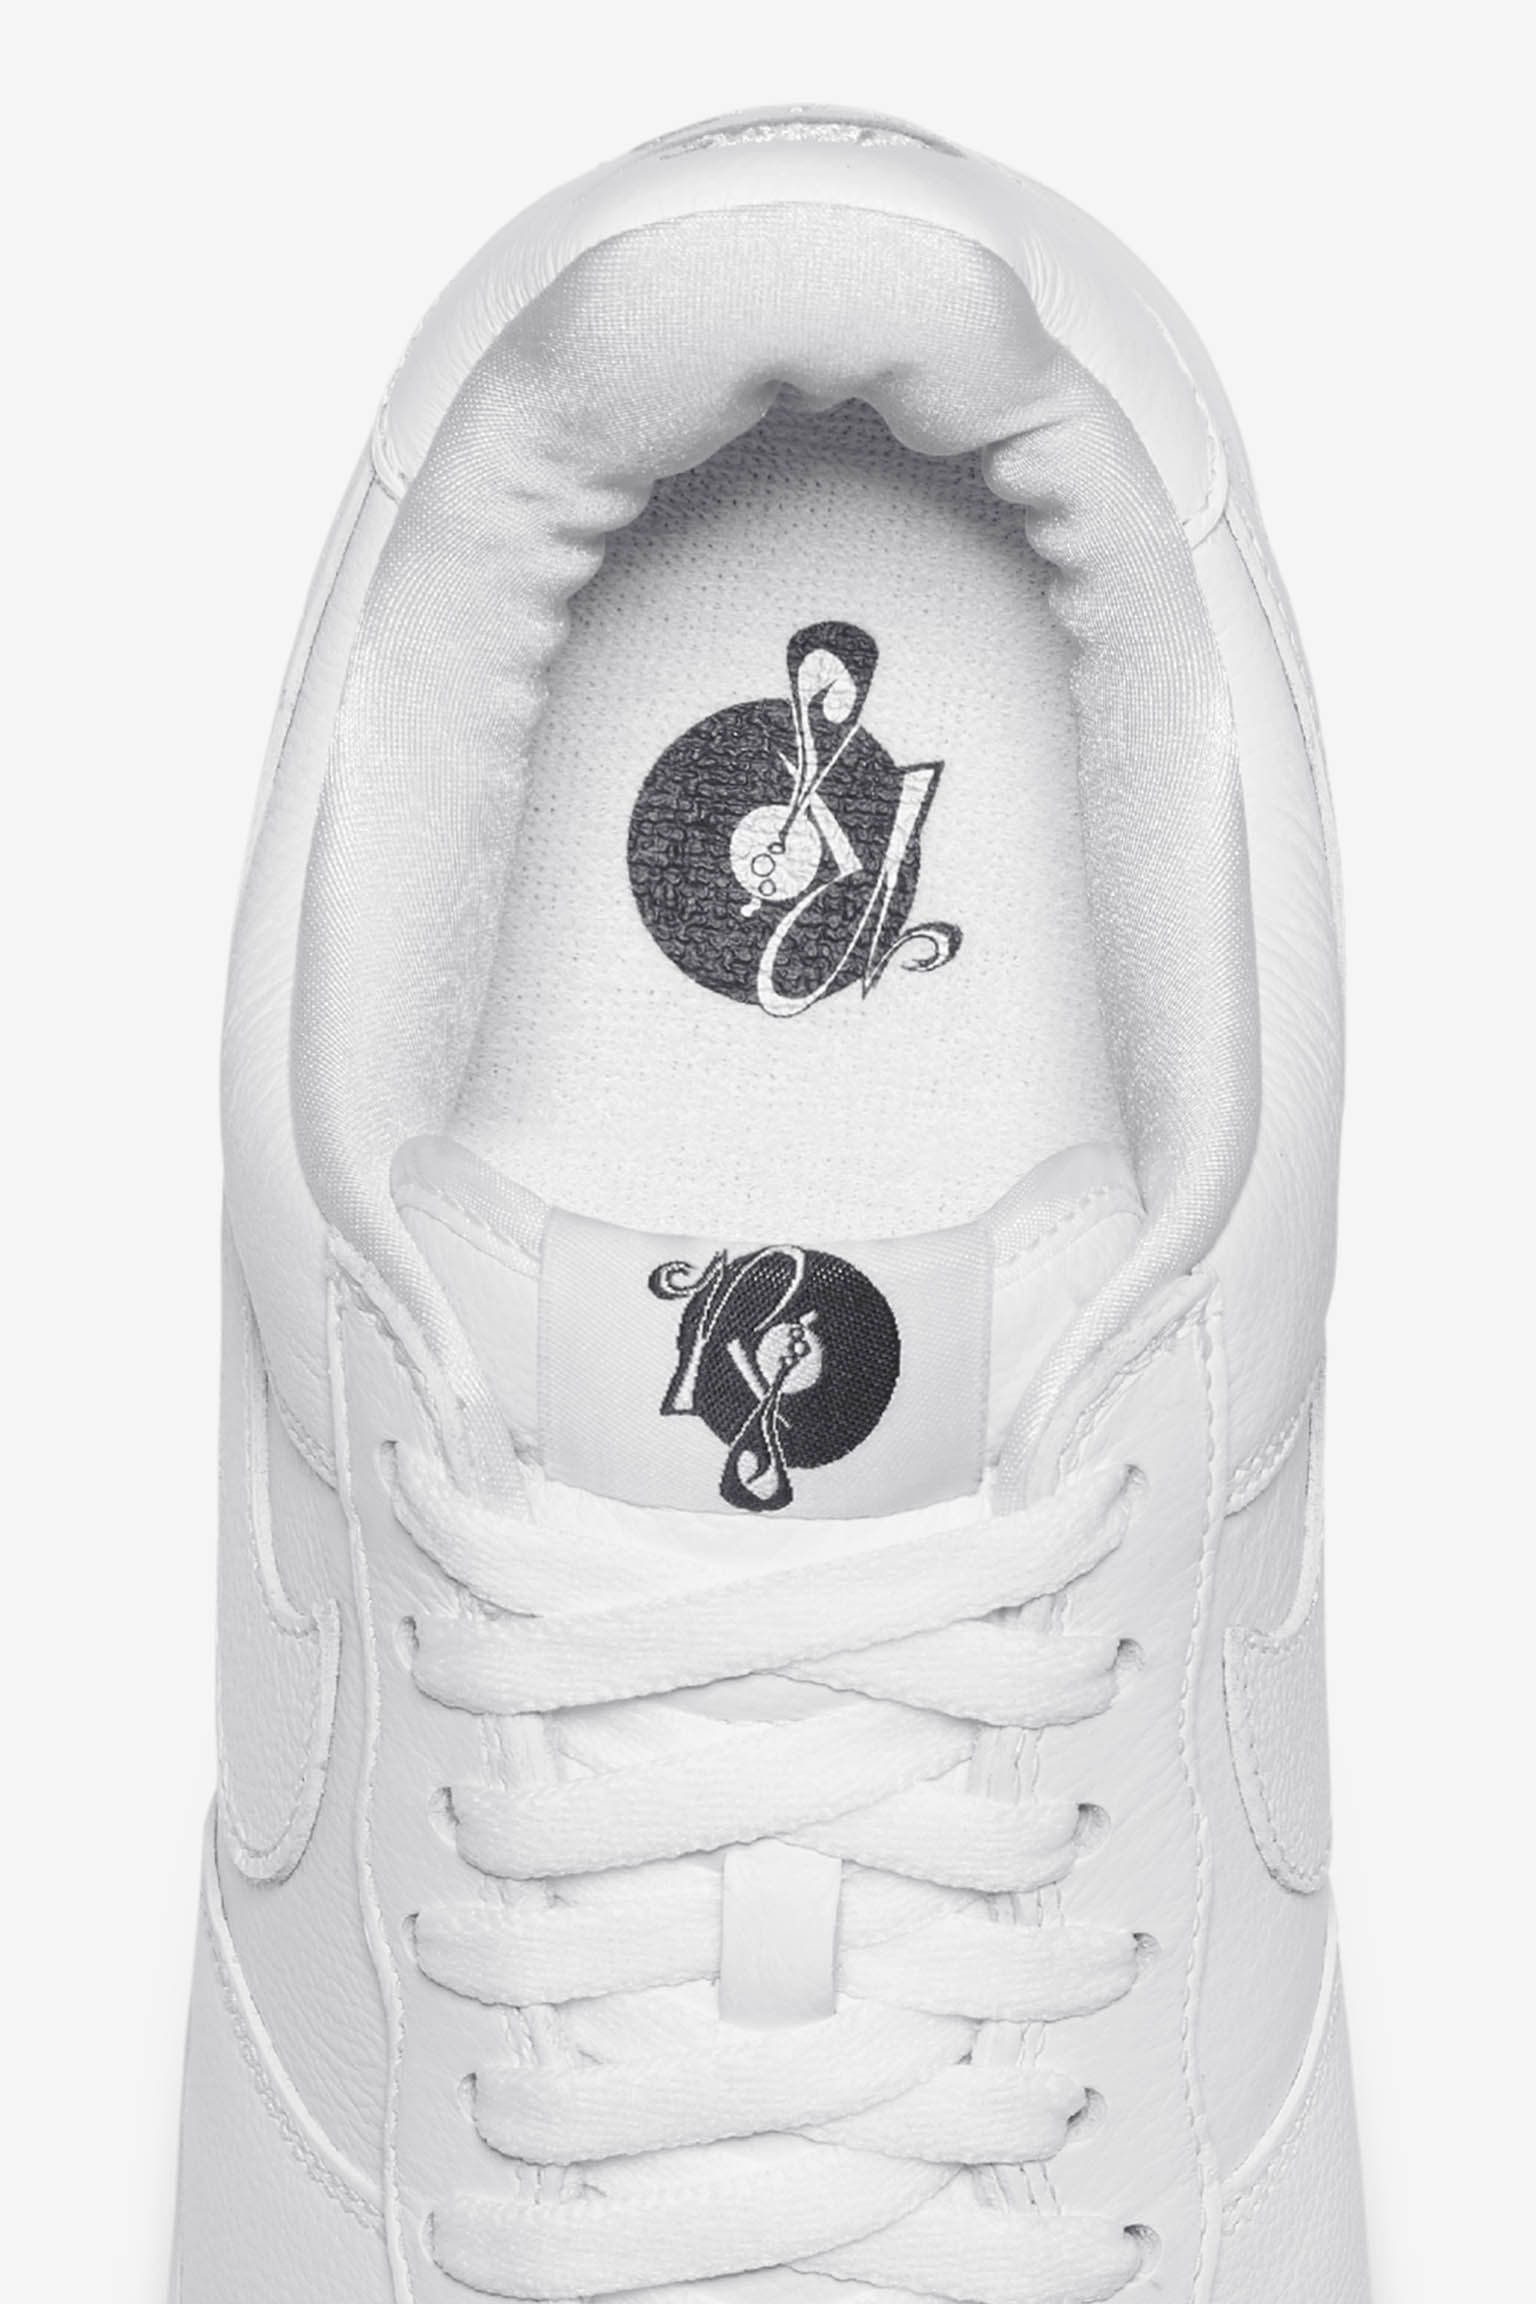 Nike Air Force 1 'Roc-A-Fella' Release Date